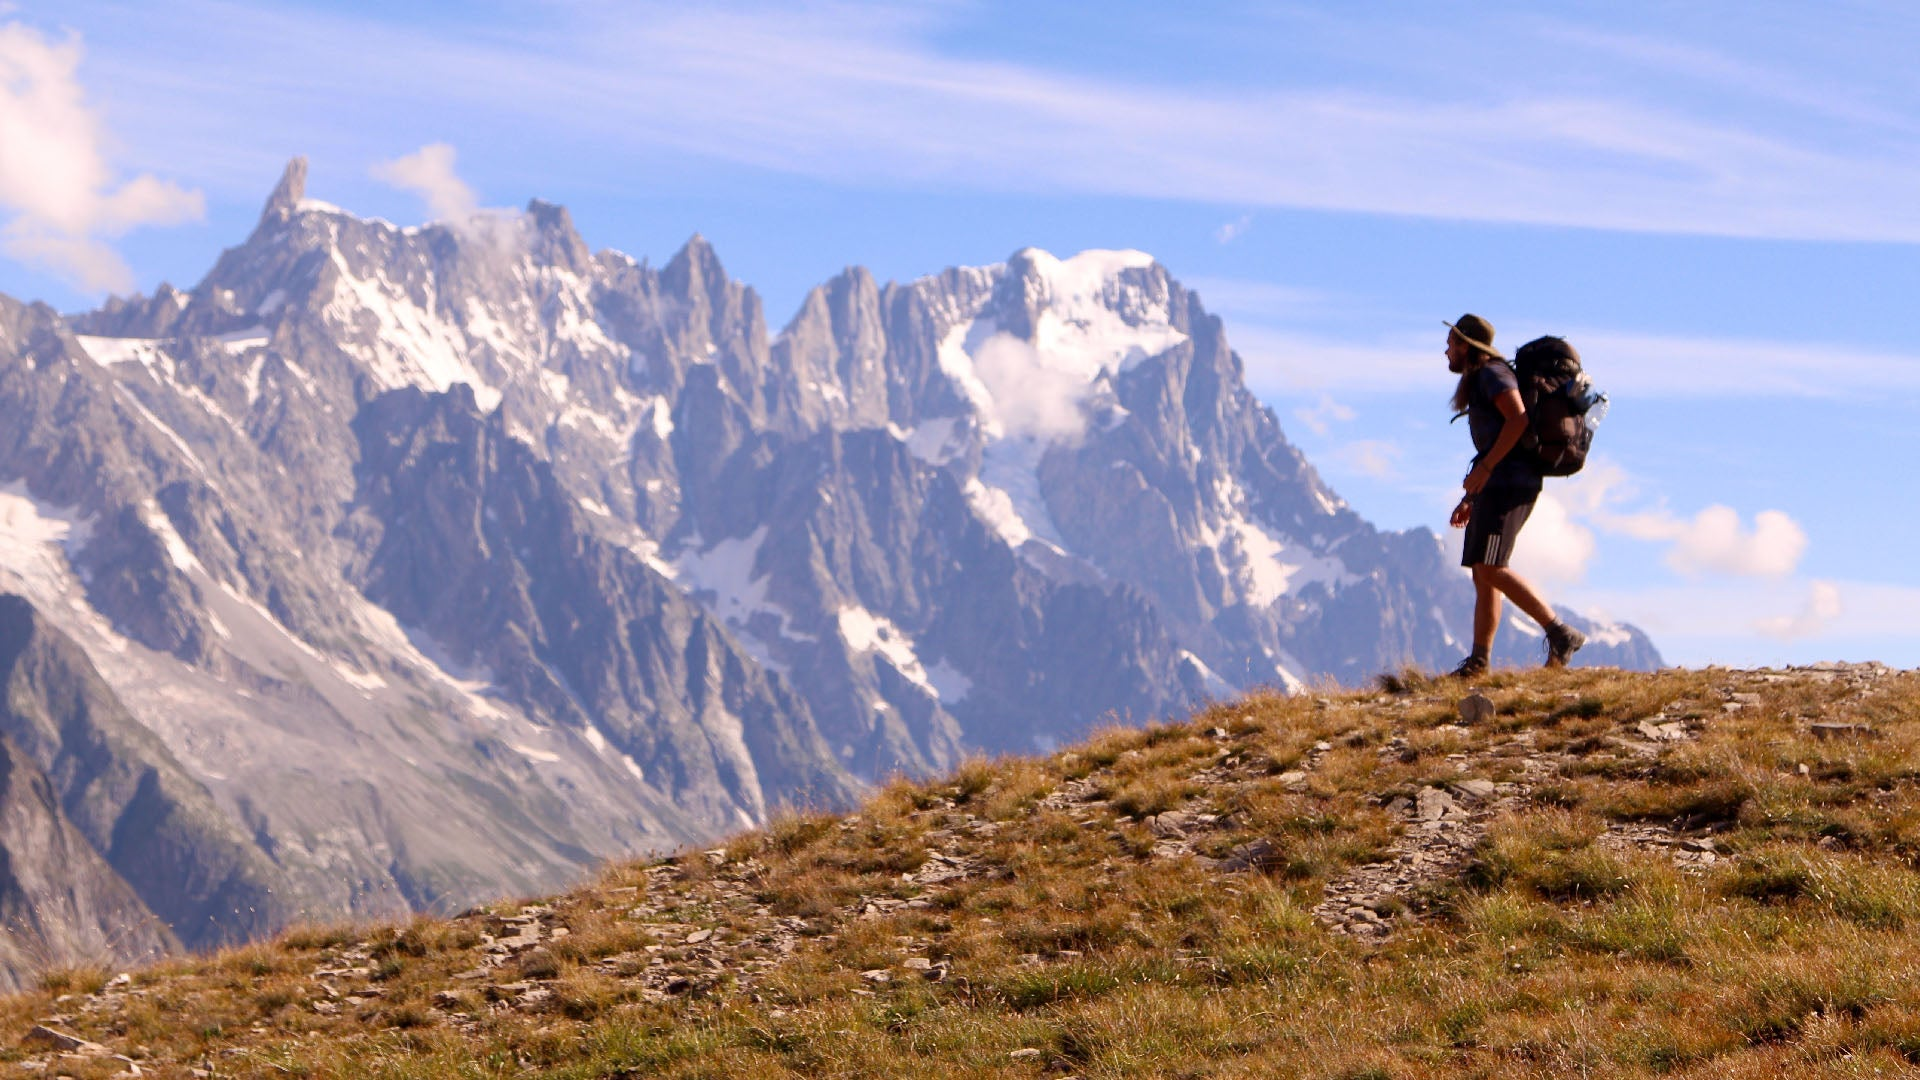 The Tour du Mont Blanc features 105 of the most breathtaking backcountry miles in the world.Matt Guenther